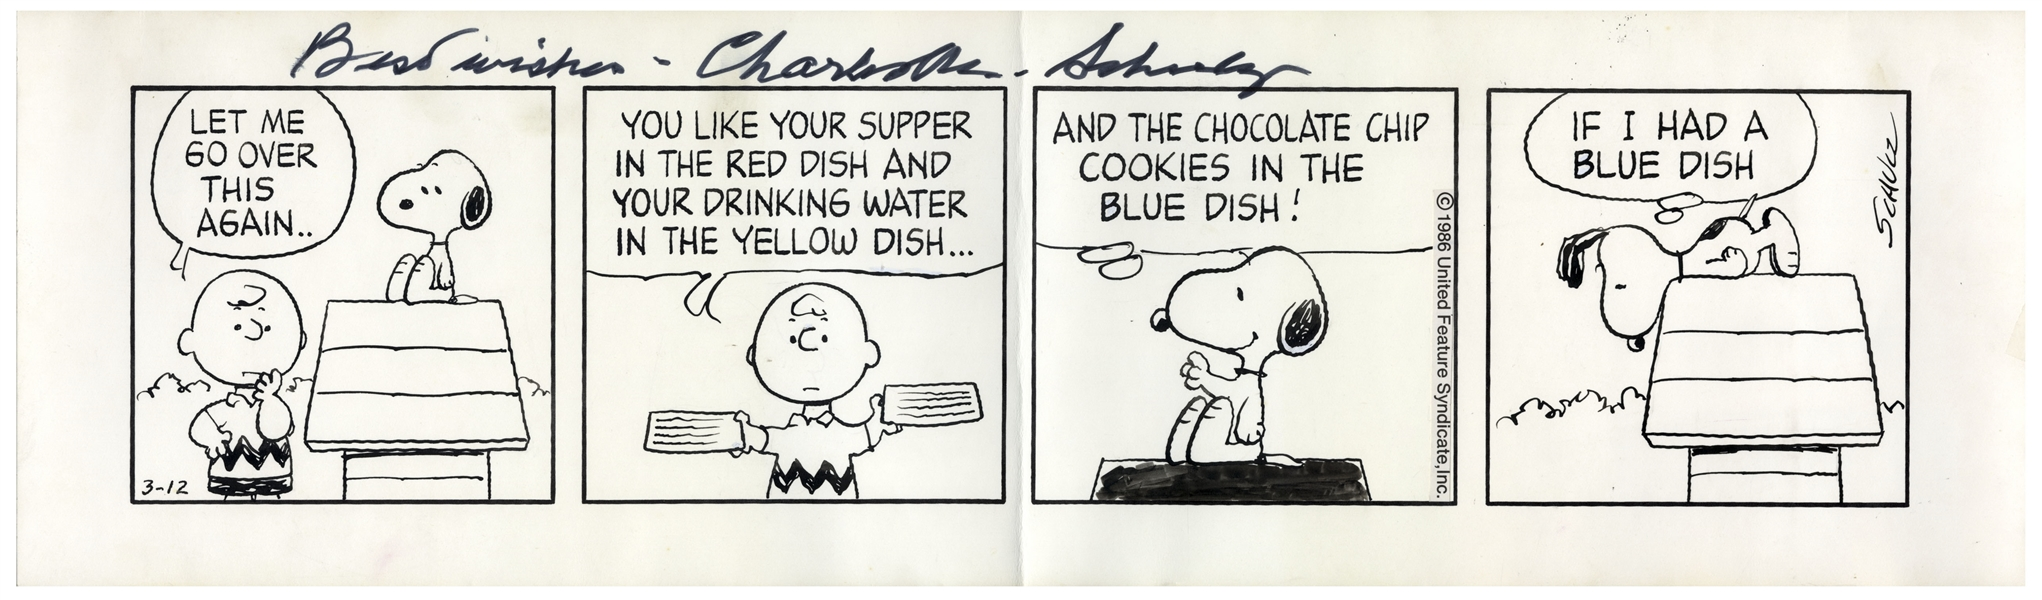 Charles Schulz Hand-Drawn ''Peanuts'' Comic Strip From 1986 -- Charlie Brown & Snoopy Negotiate His Treats